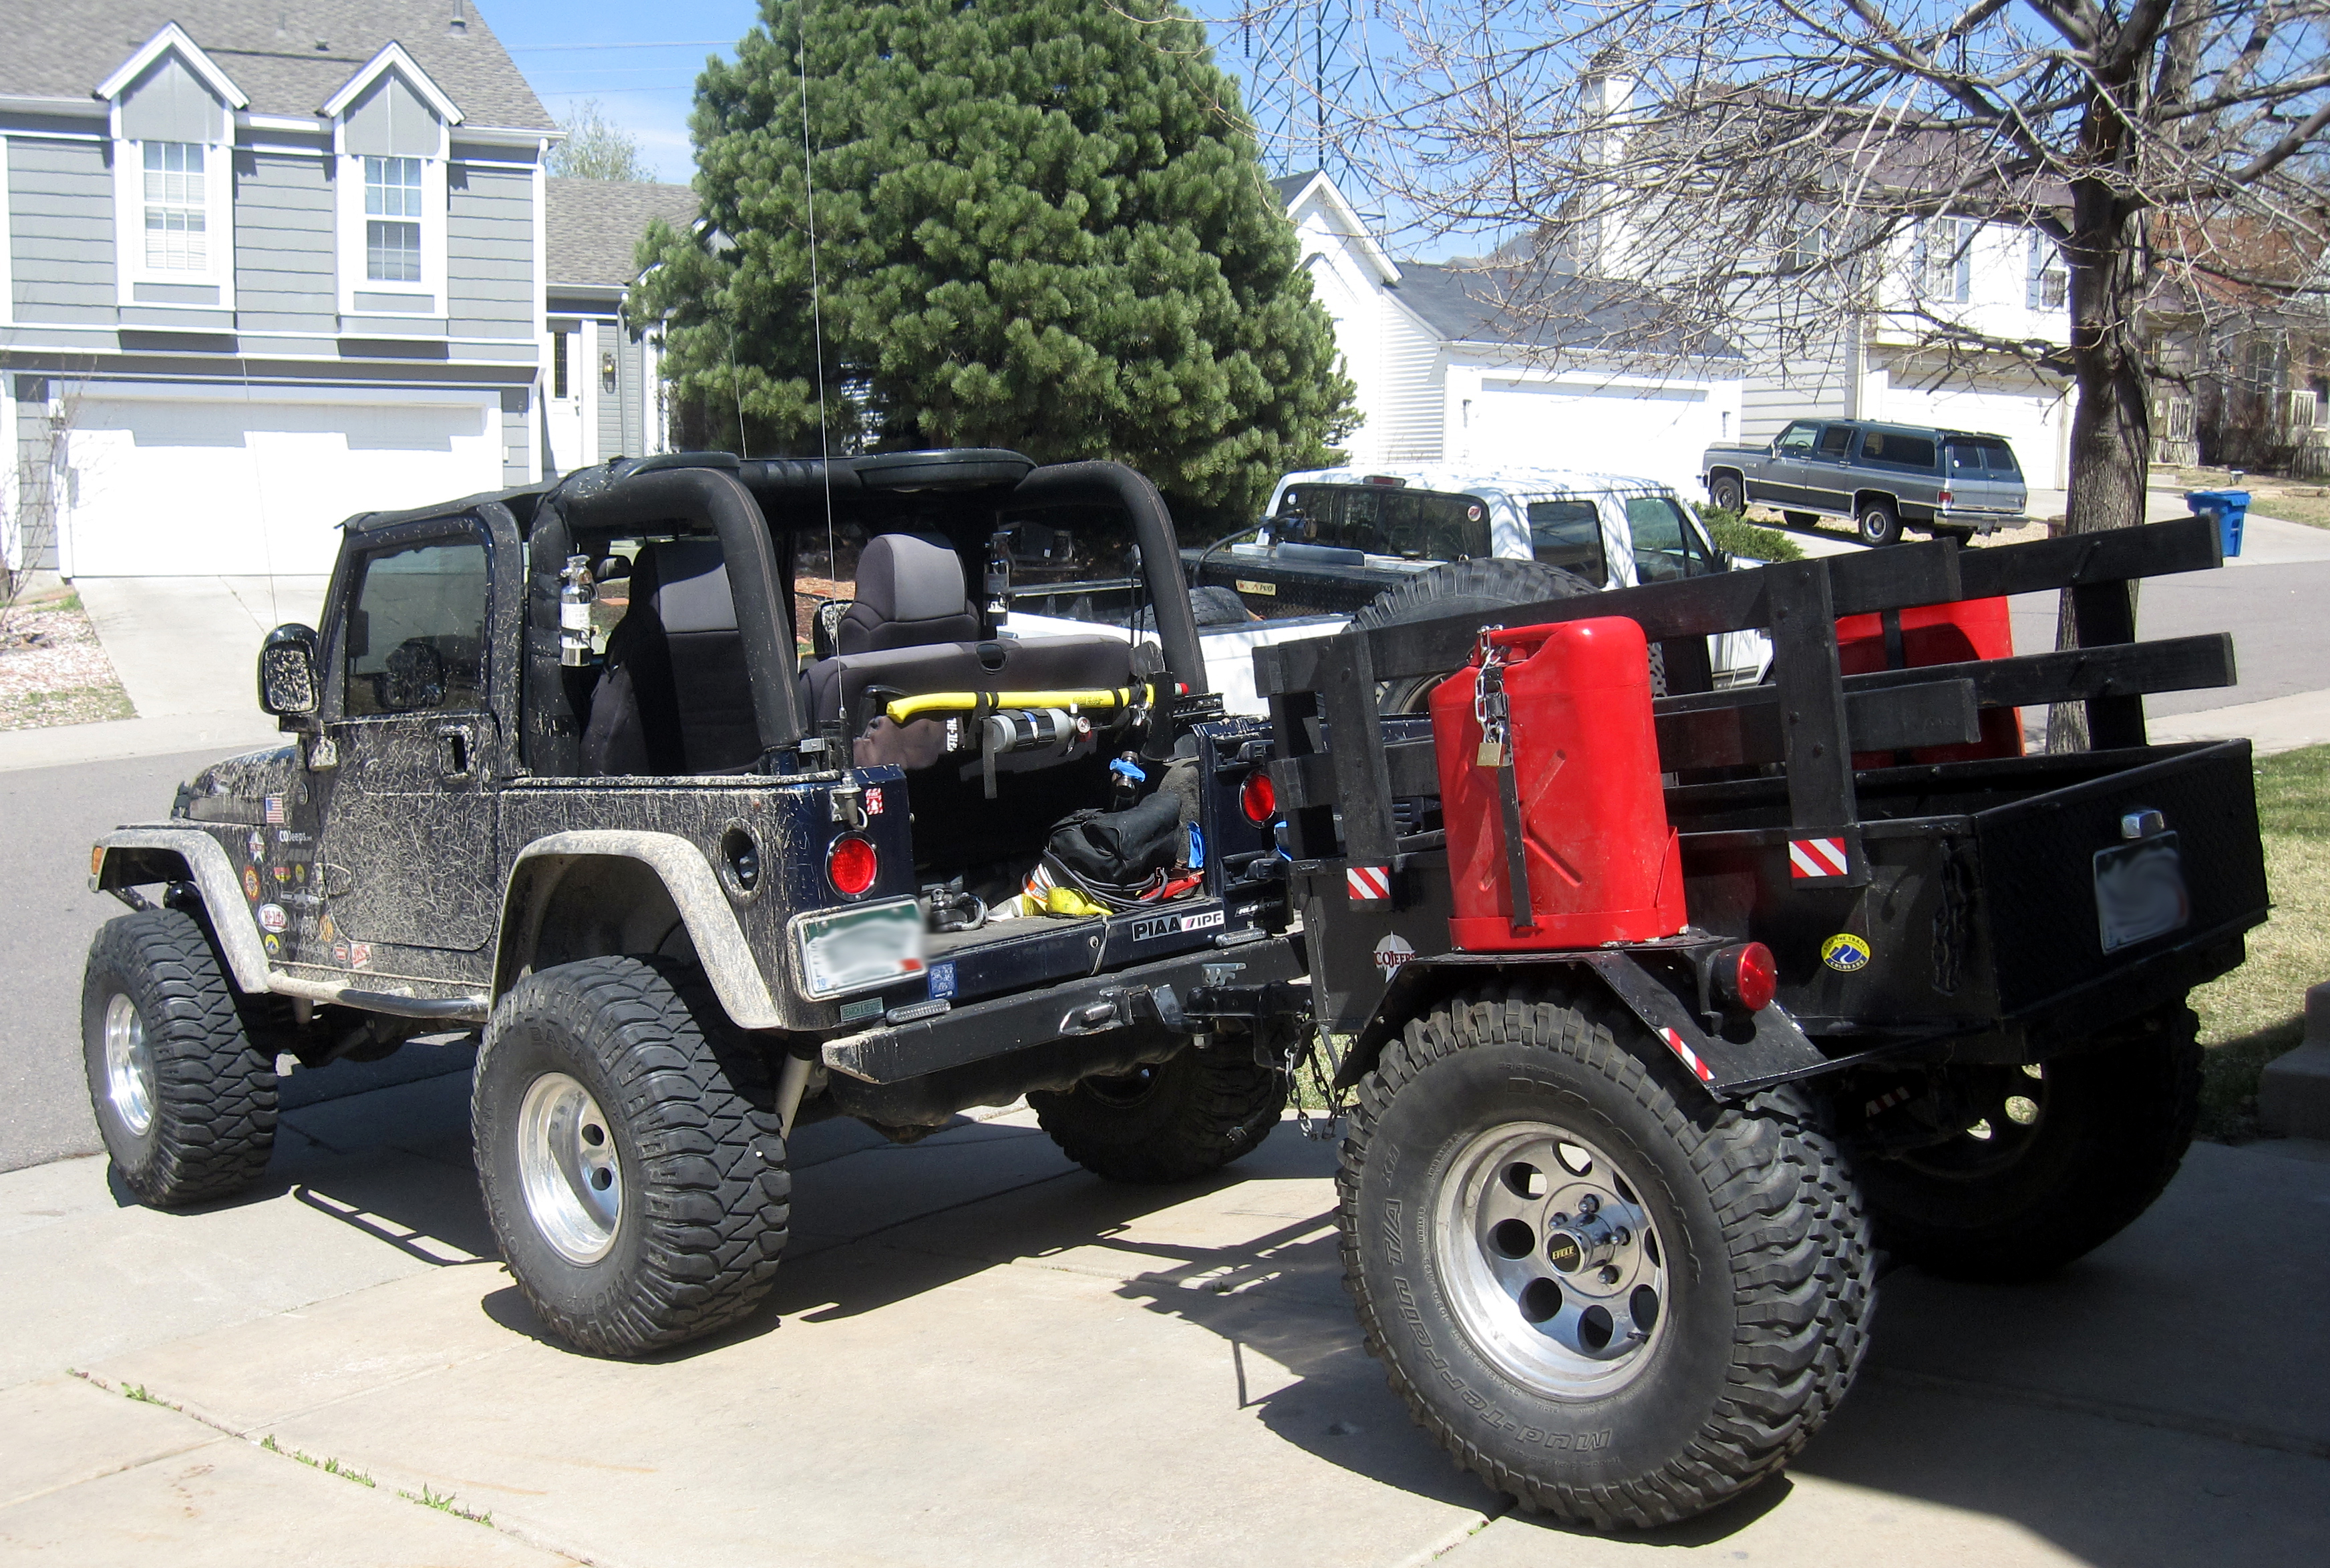 Vehicle Invoice By Vin Word Front Bumper Help  Jeep Wrangler Forum Holiday Inn Receipt Excel with Pro Forma Invoice Example Httpwwwotpphotocomjtjpg Invoicing Programs Free Excel